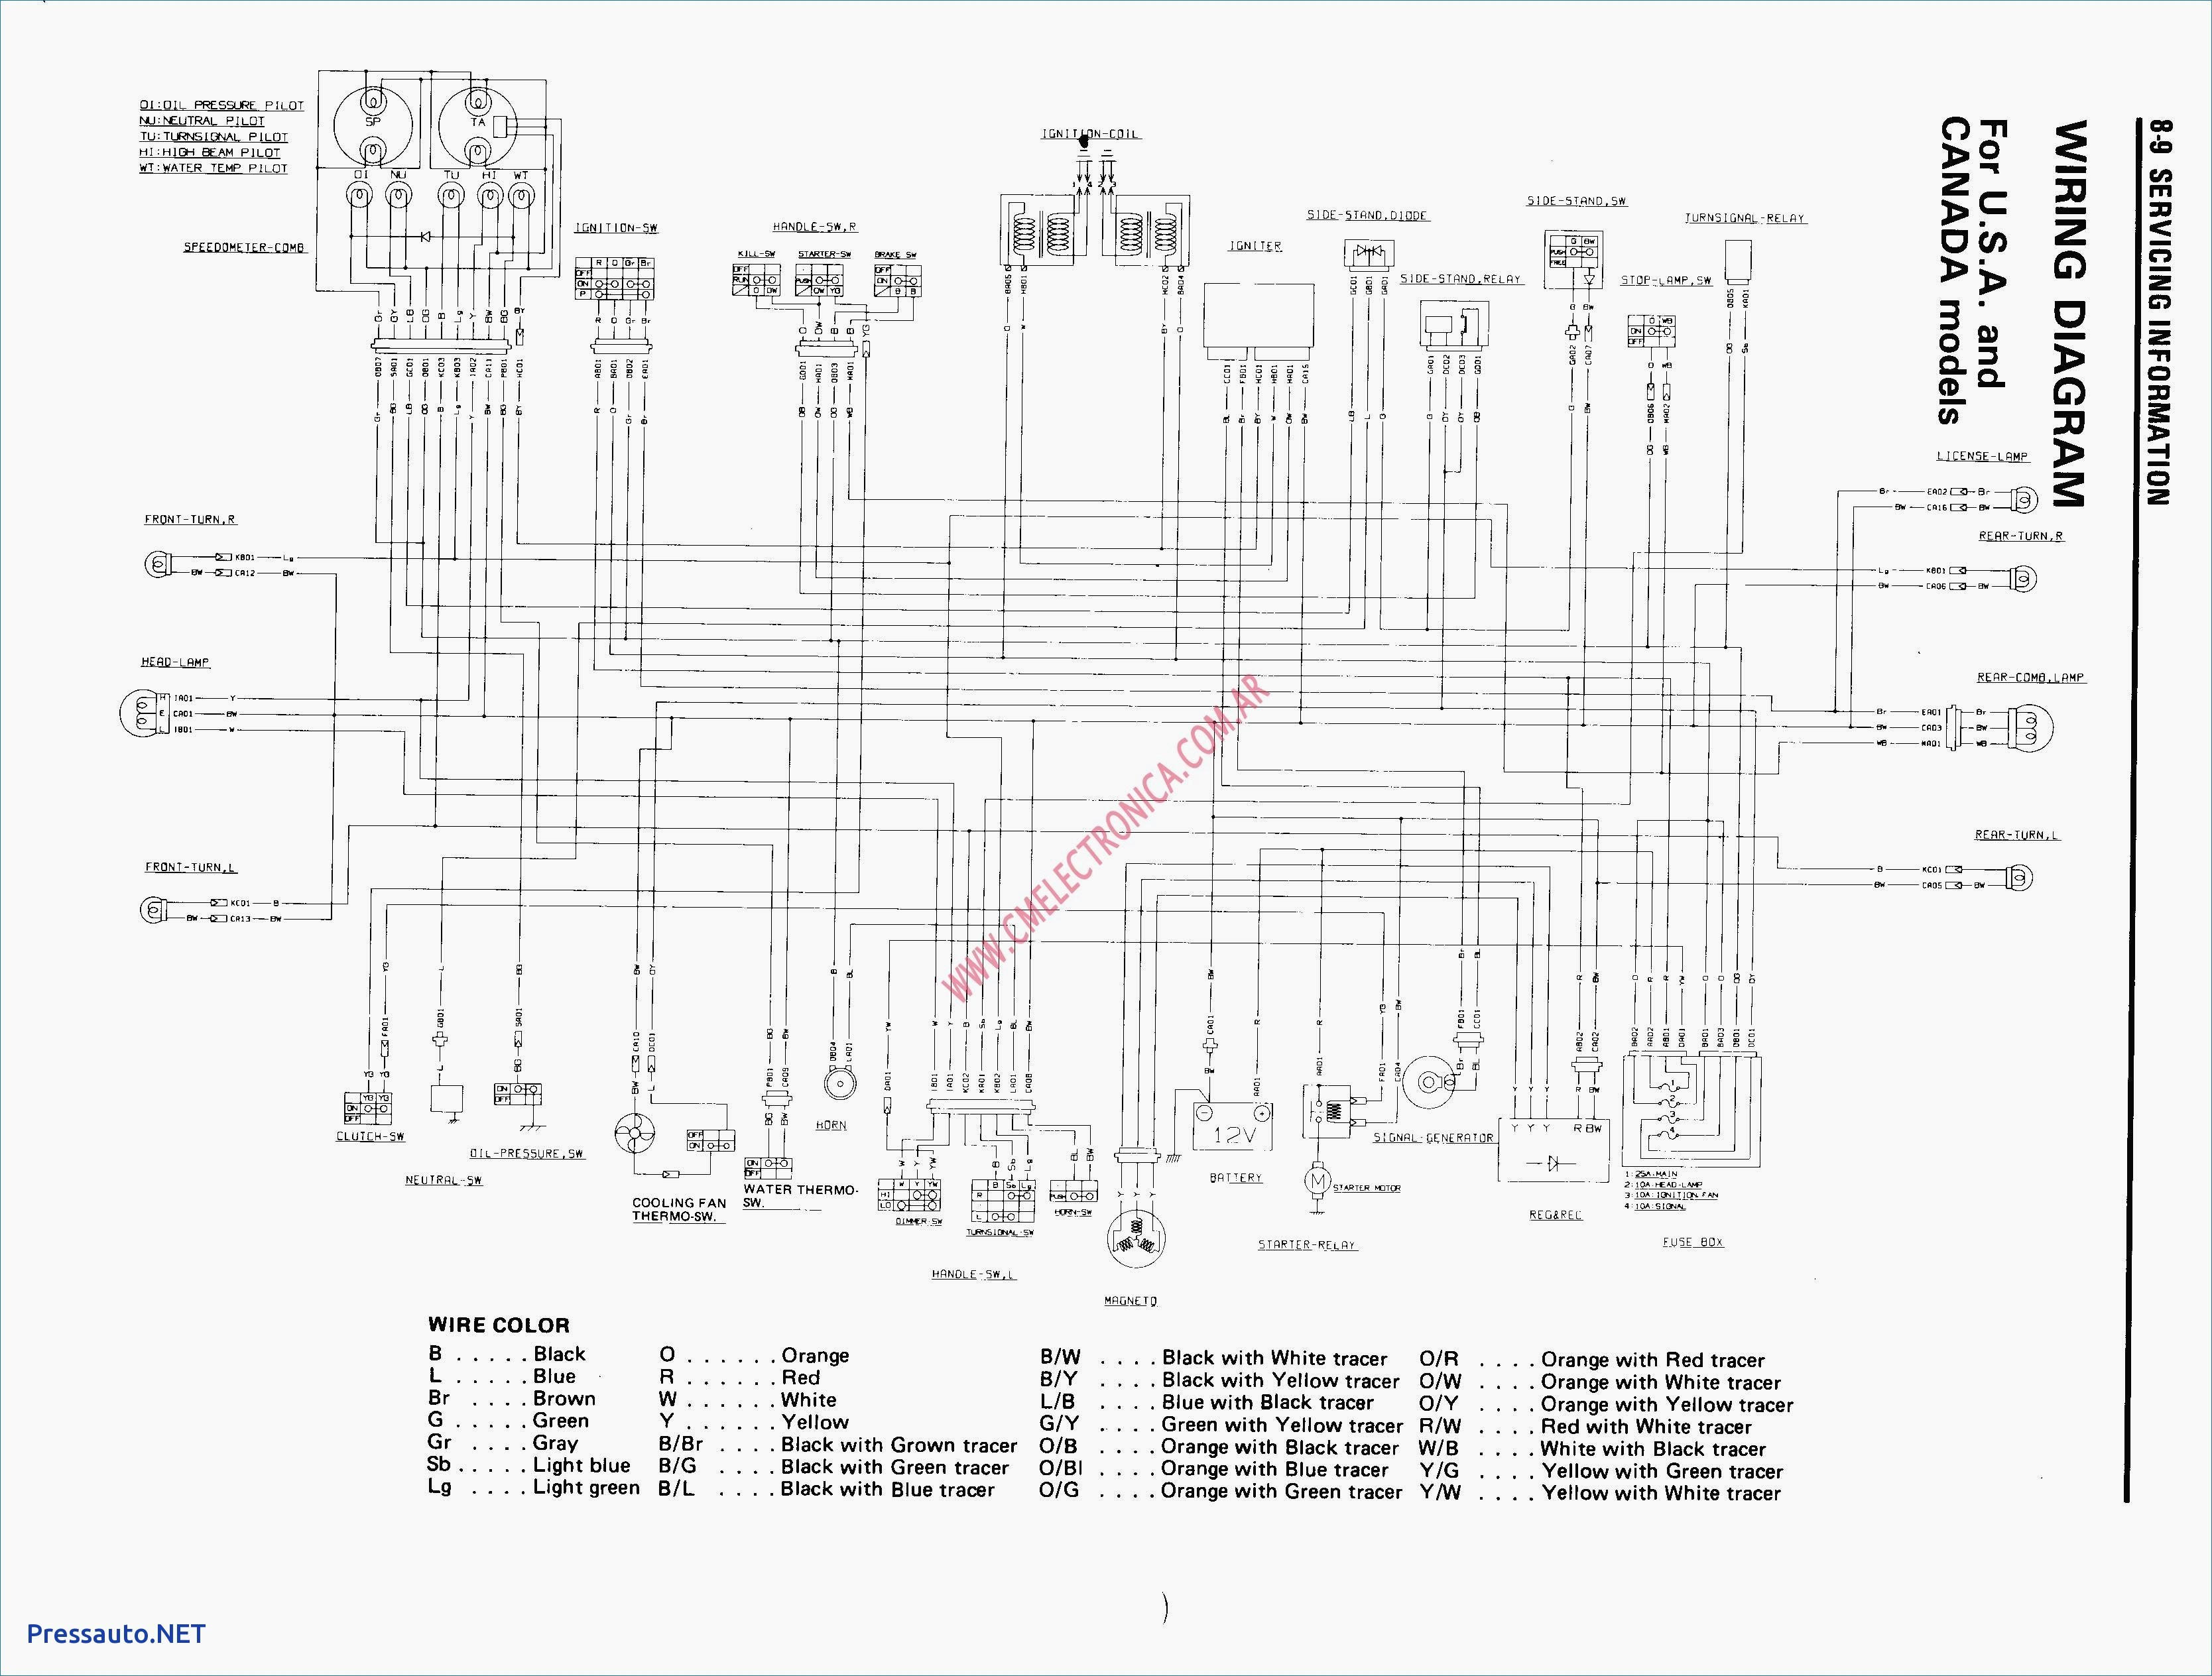 Yamaha Grizzly 660 Engine Diagram Warrior Wiring Diagram Wiring Diagram Of Yamaha Grizzly 660 Engine Diagram